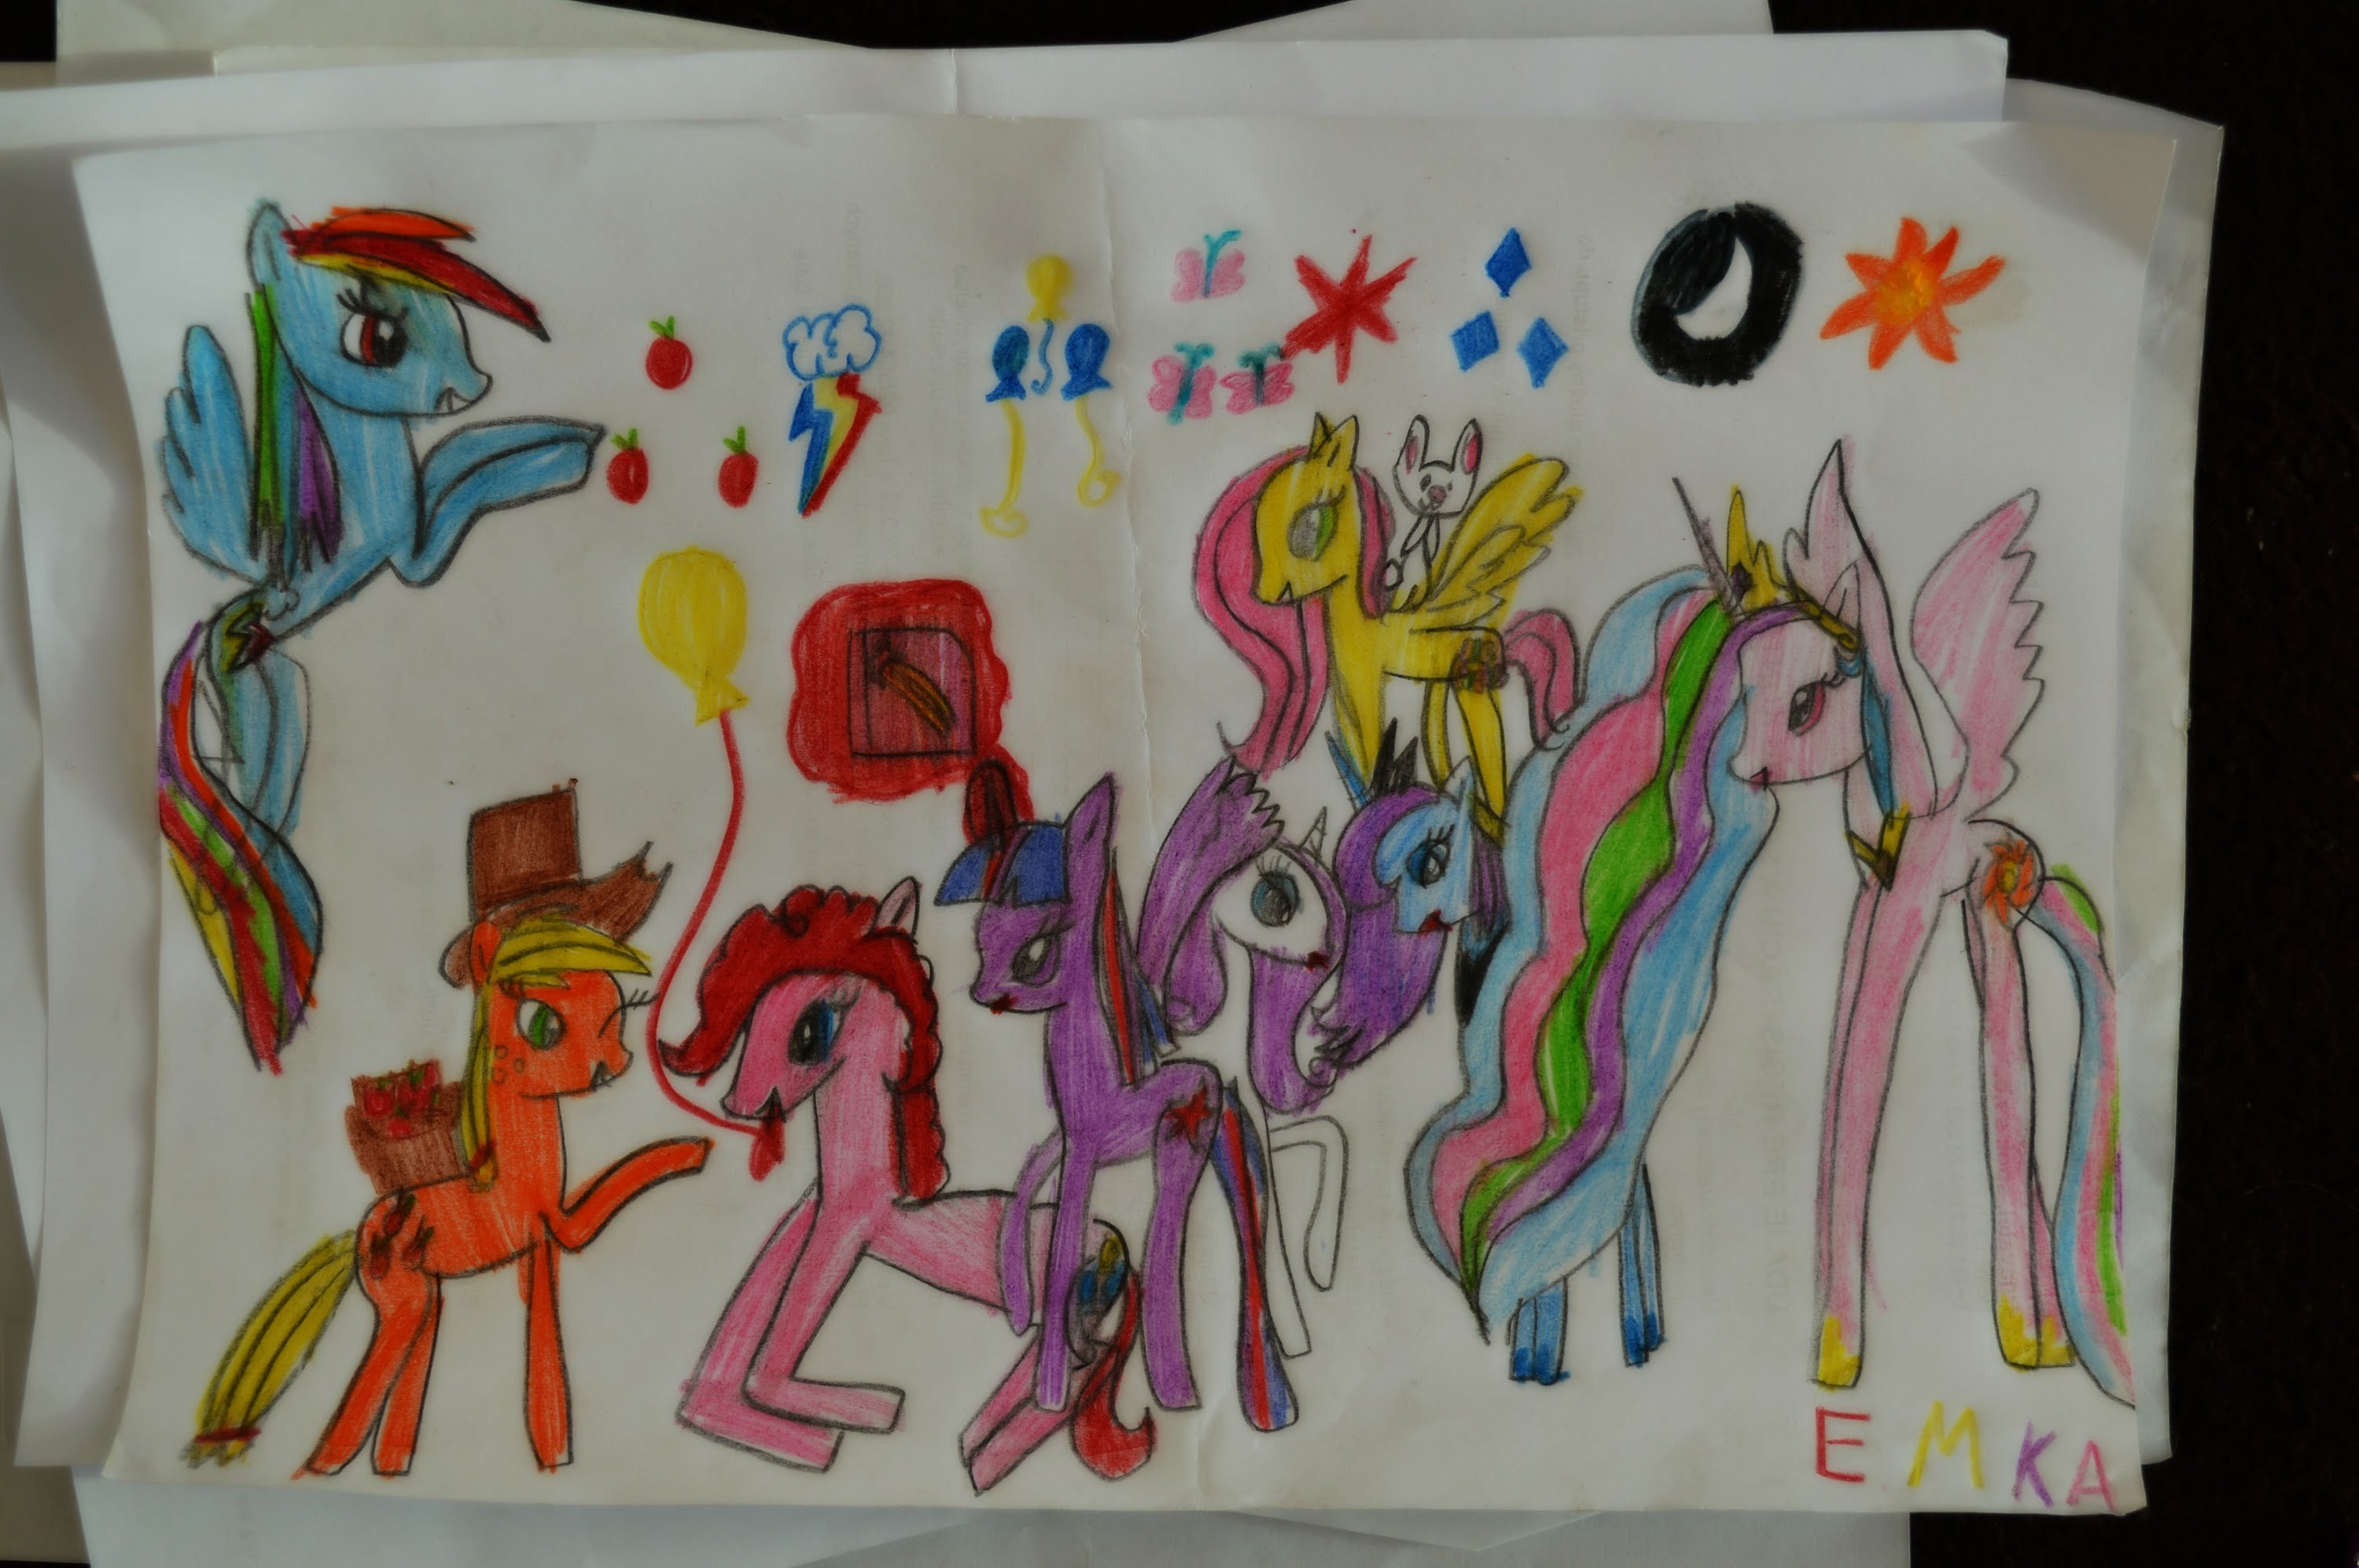 Drawn my little pony 10 year old Years girl) old Drawing YouTube